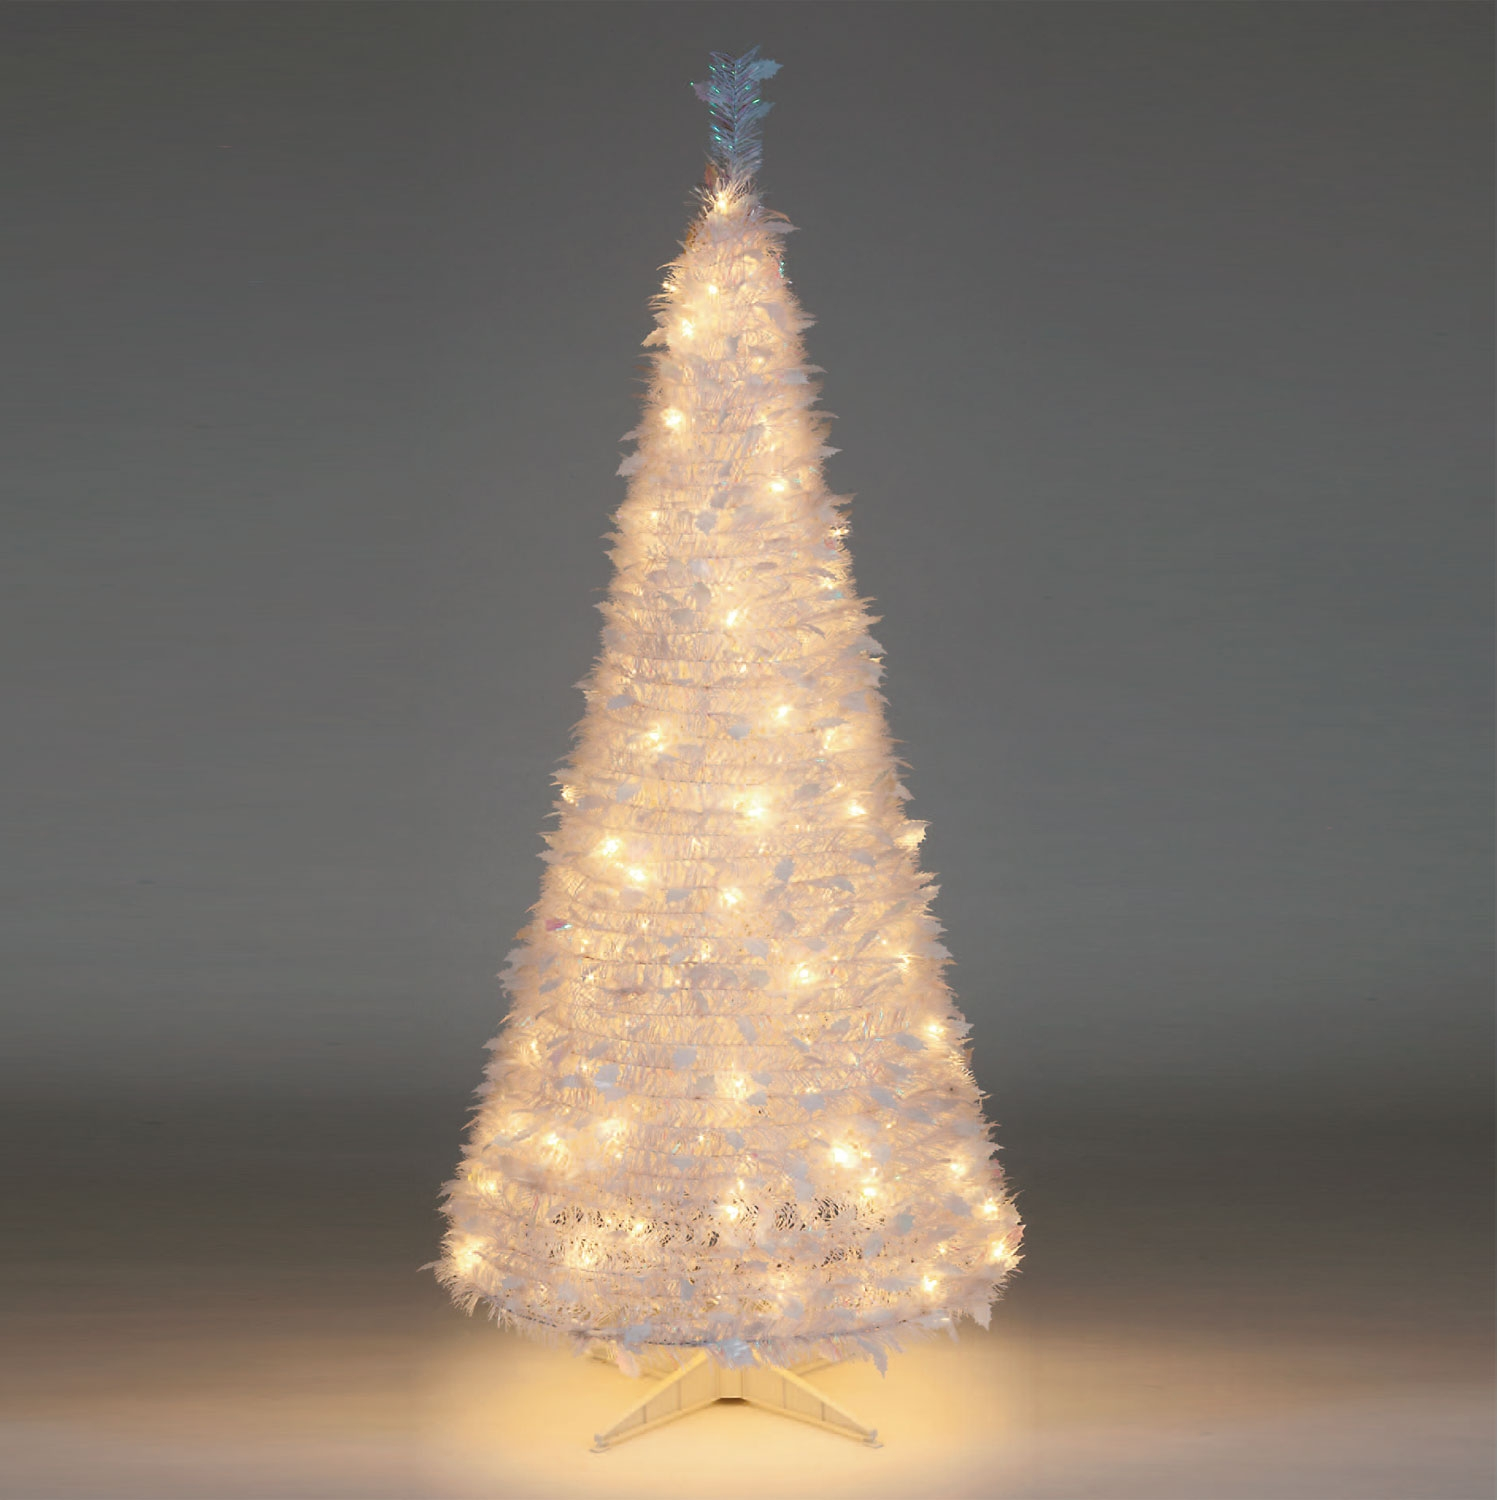 Pull Up Christmas Trees With Lights